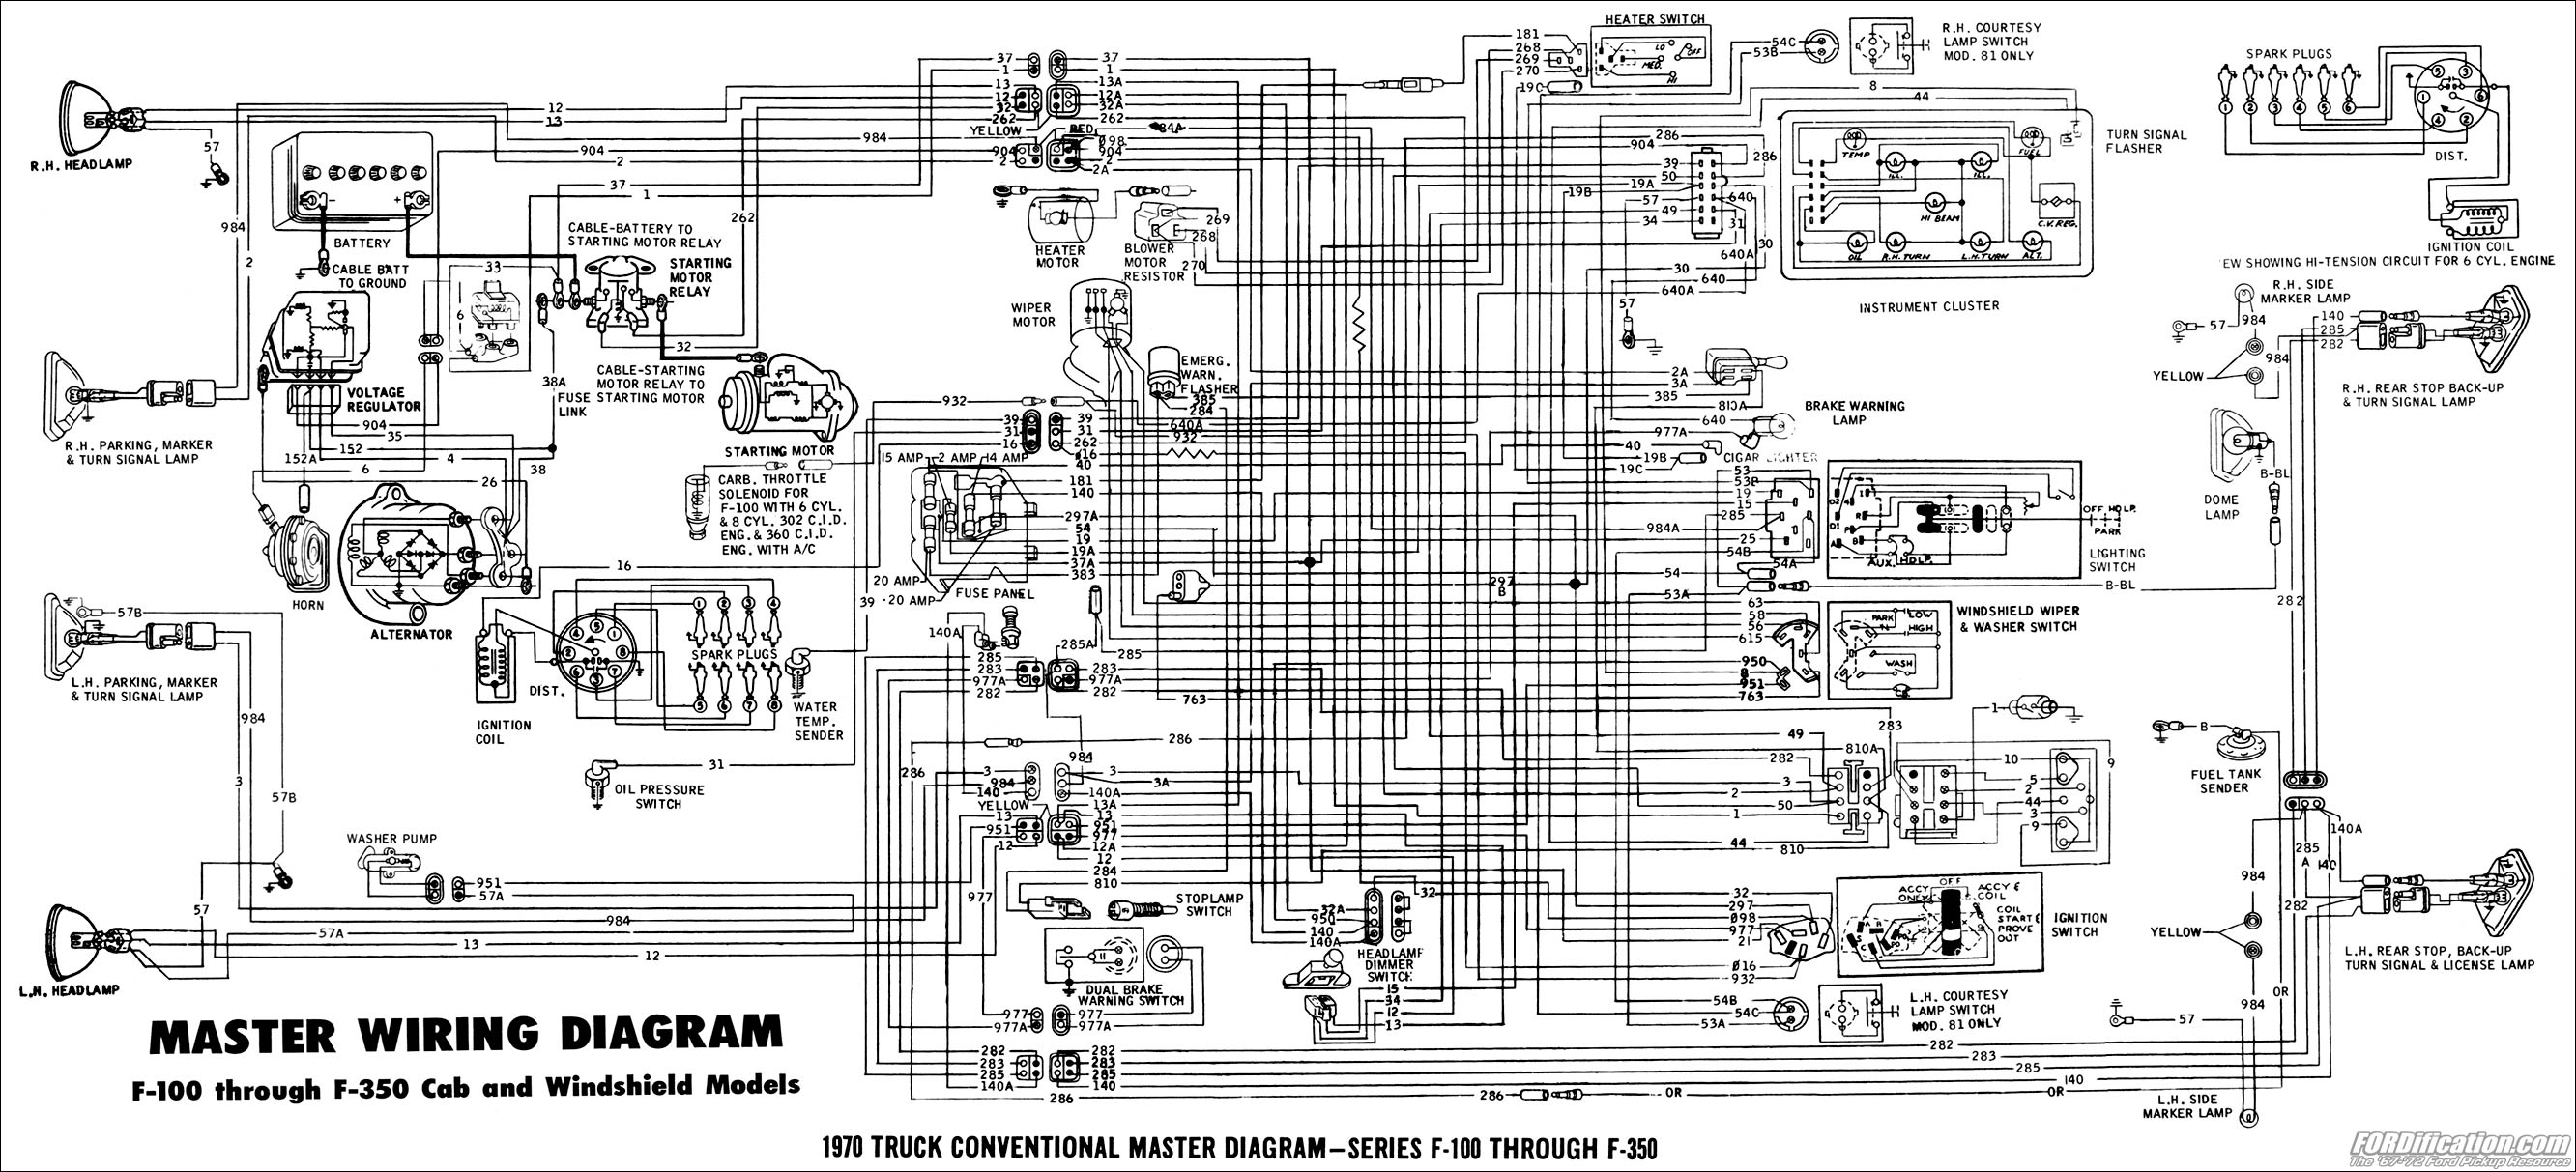 1971 Ford F100 Wiring Lamp Schematics Diagram 1988 Mustang Cruise Control 1978 Pickup Detailed 1965 Alternator 1970 F